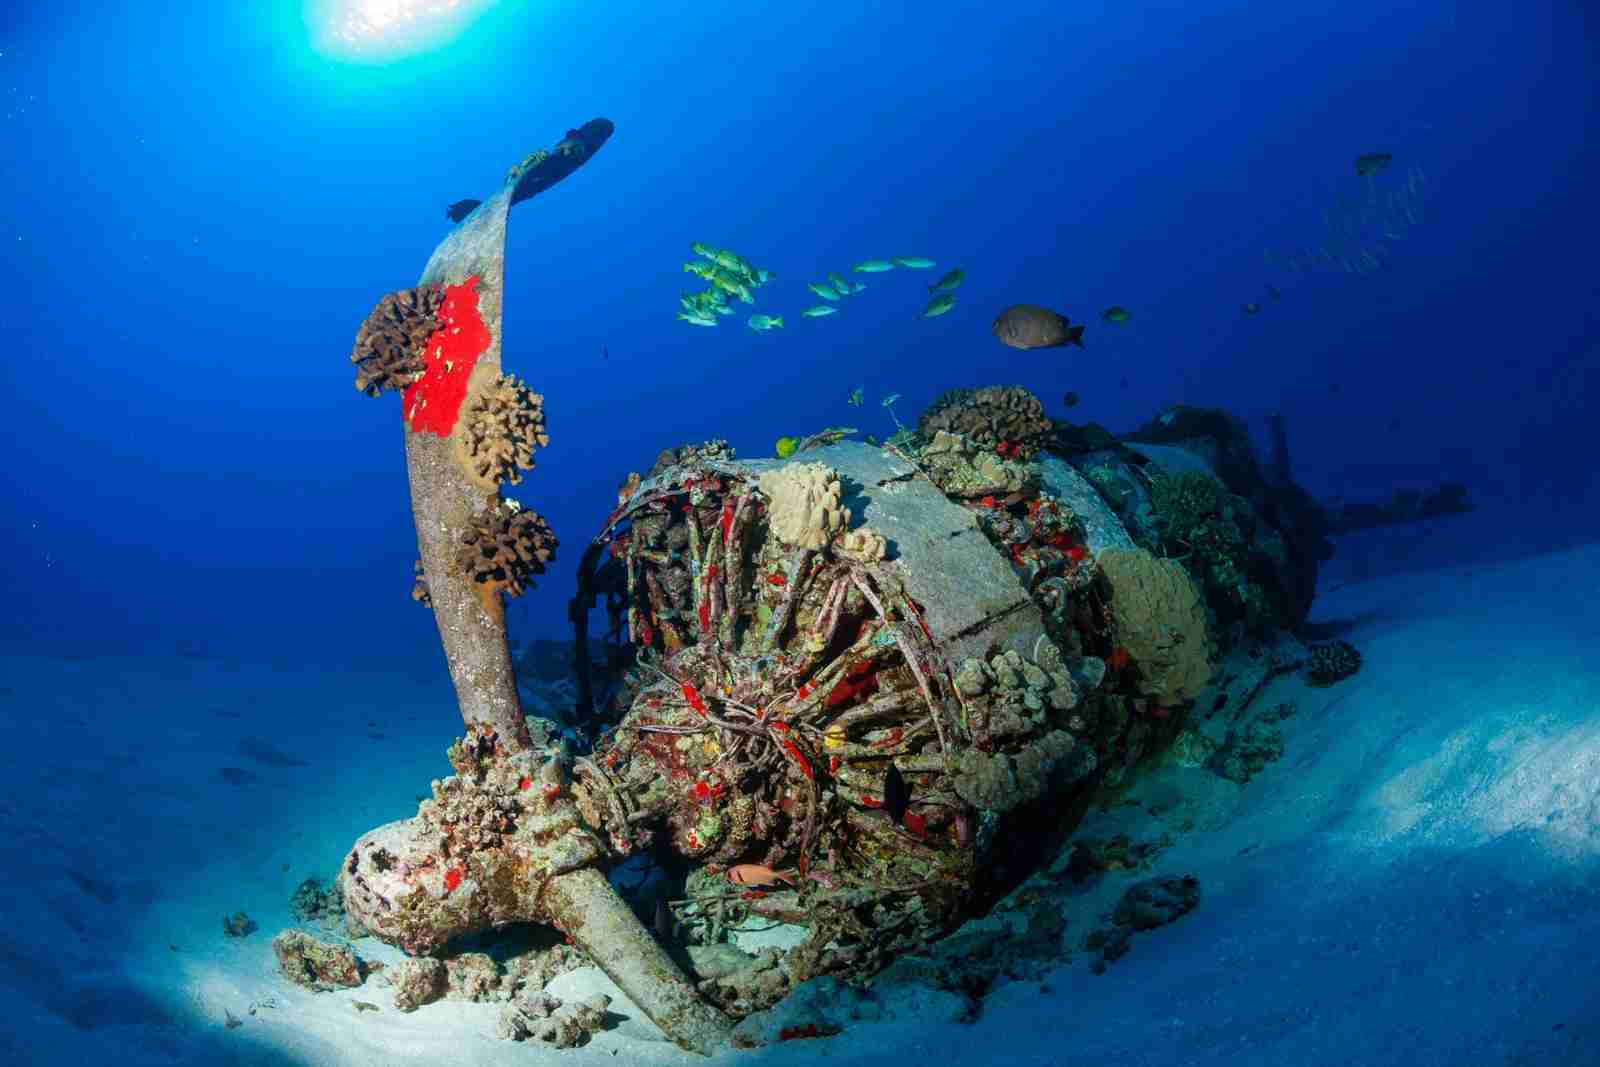 The Corsair Plane Wreck off the coast of Oahu. (Photo by Kevin Boutwell/Getty Images)